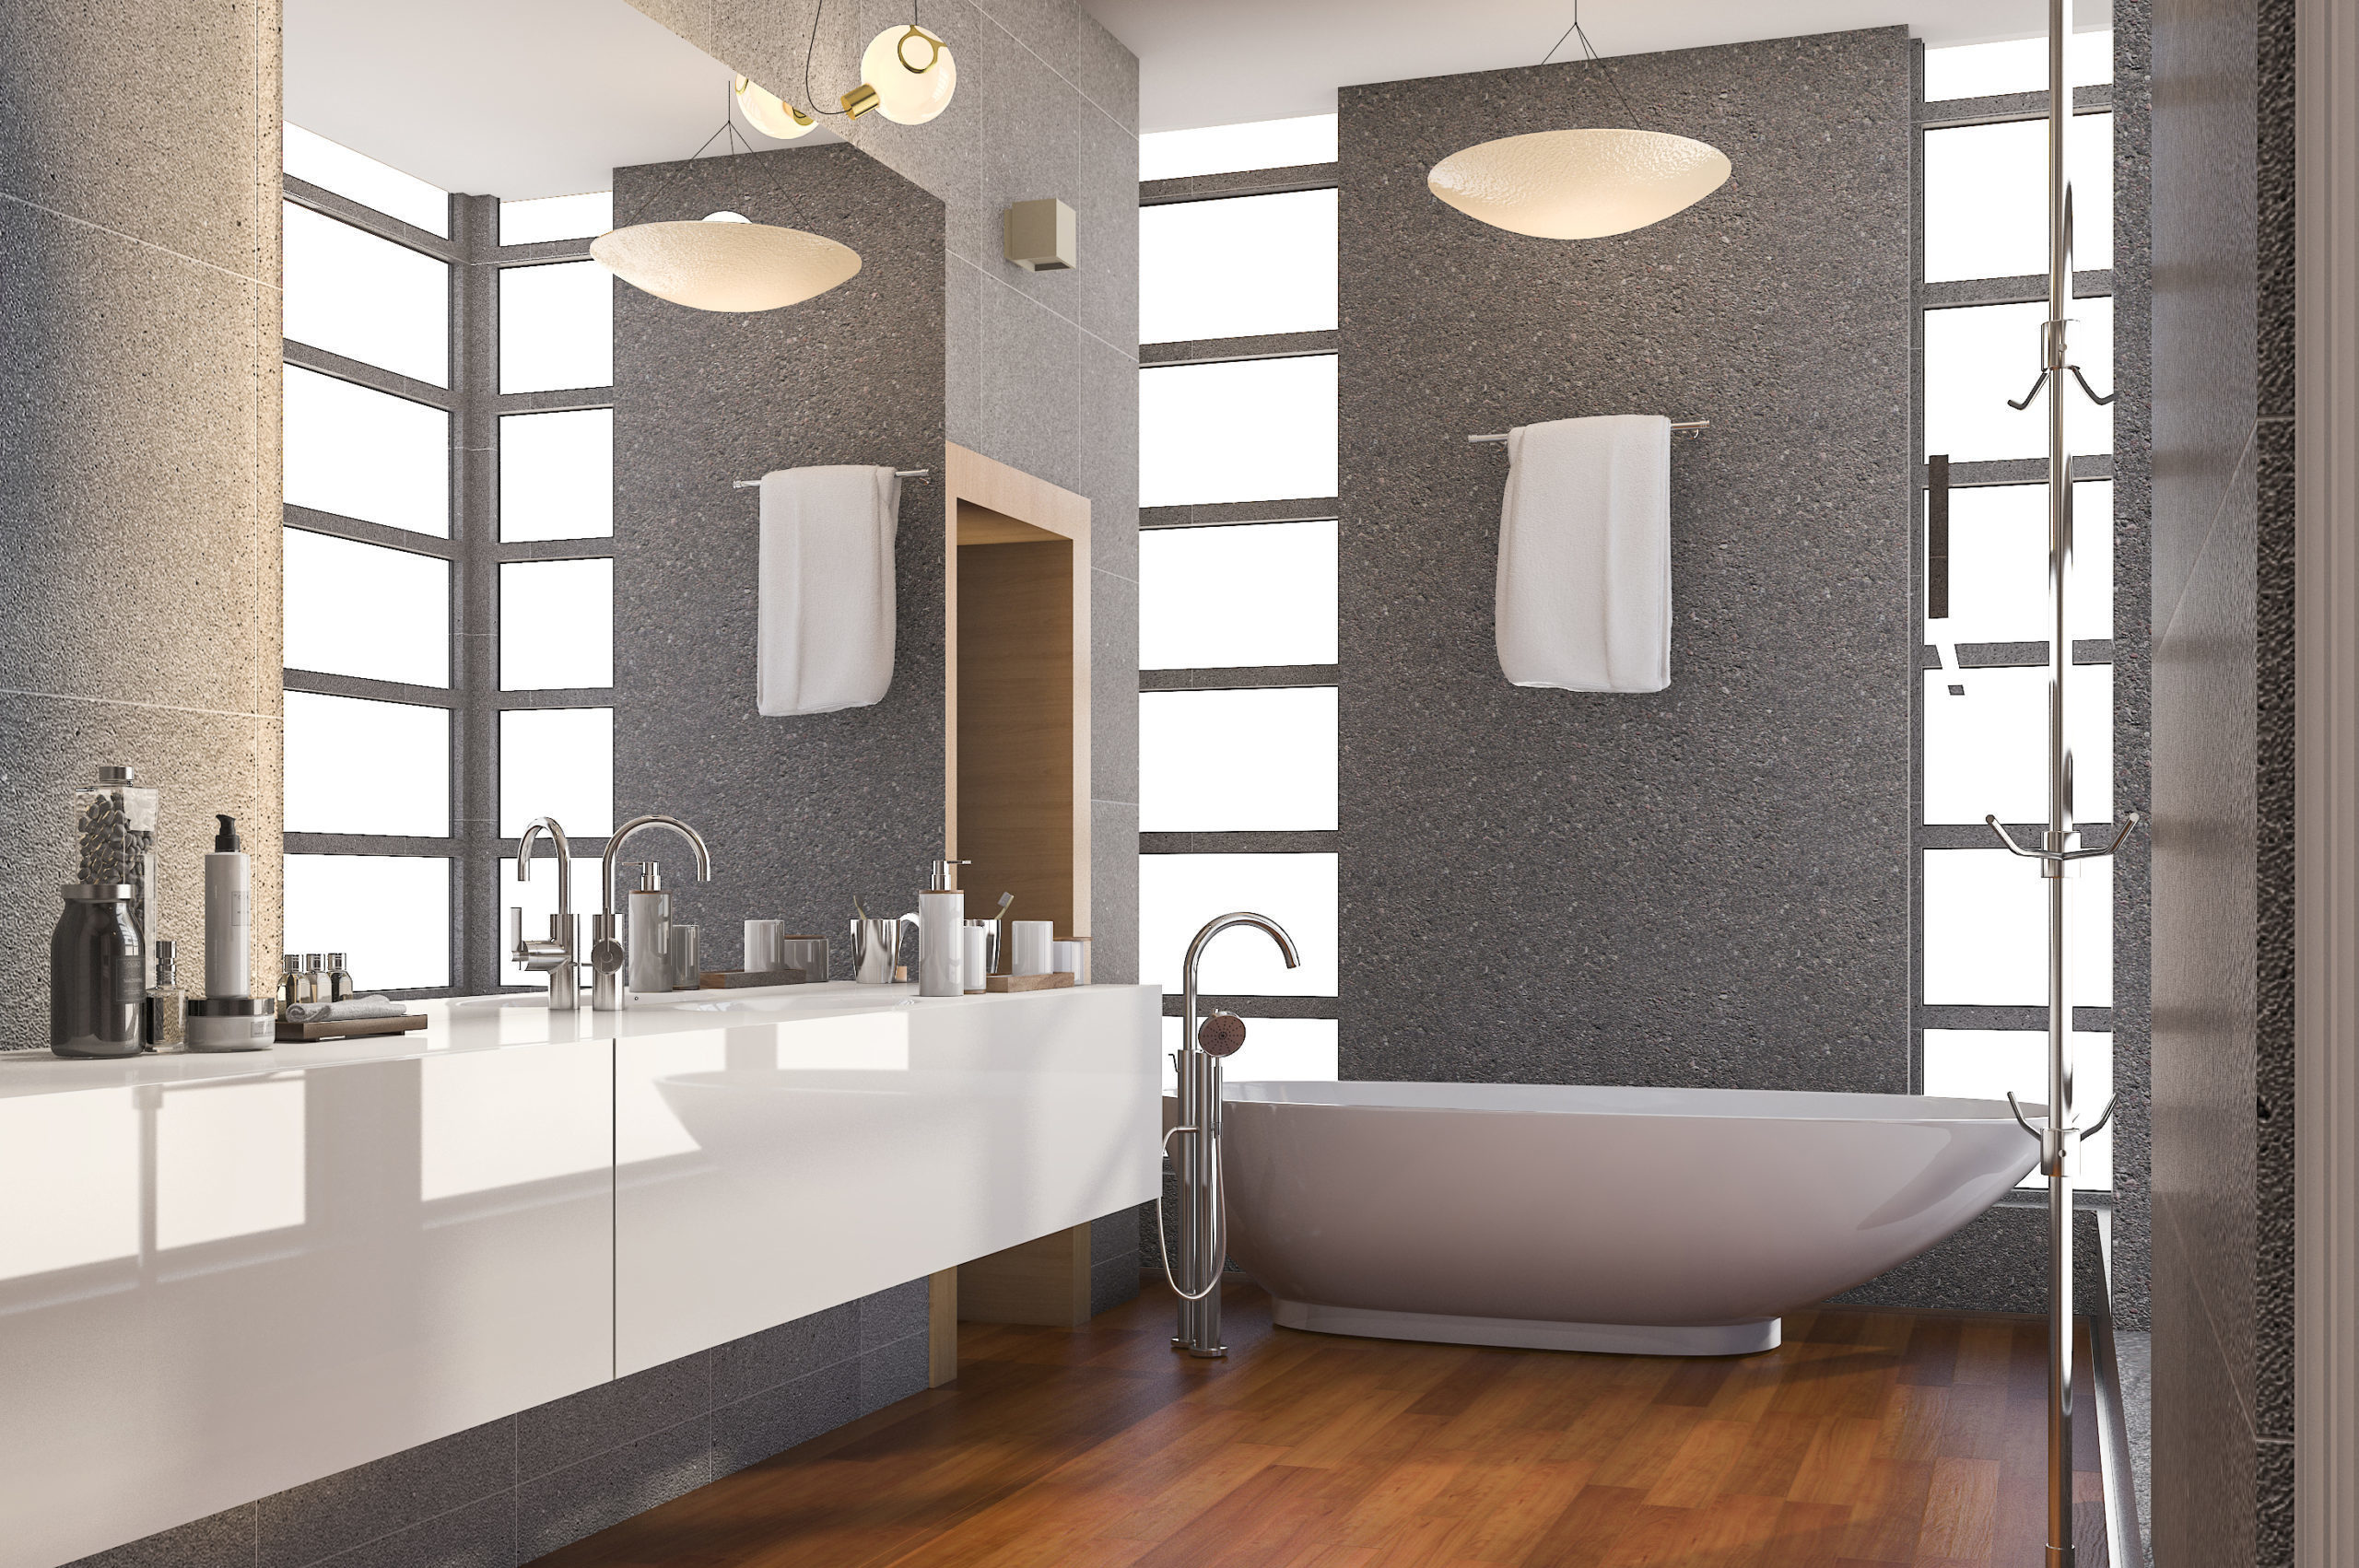 3d-rendering-grey-stainless-metal-bathroom-with-wh-6R6YW5W